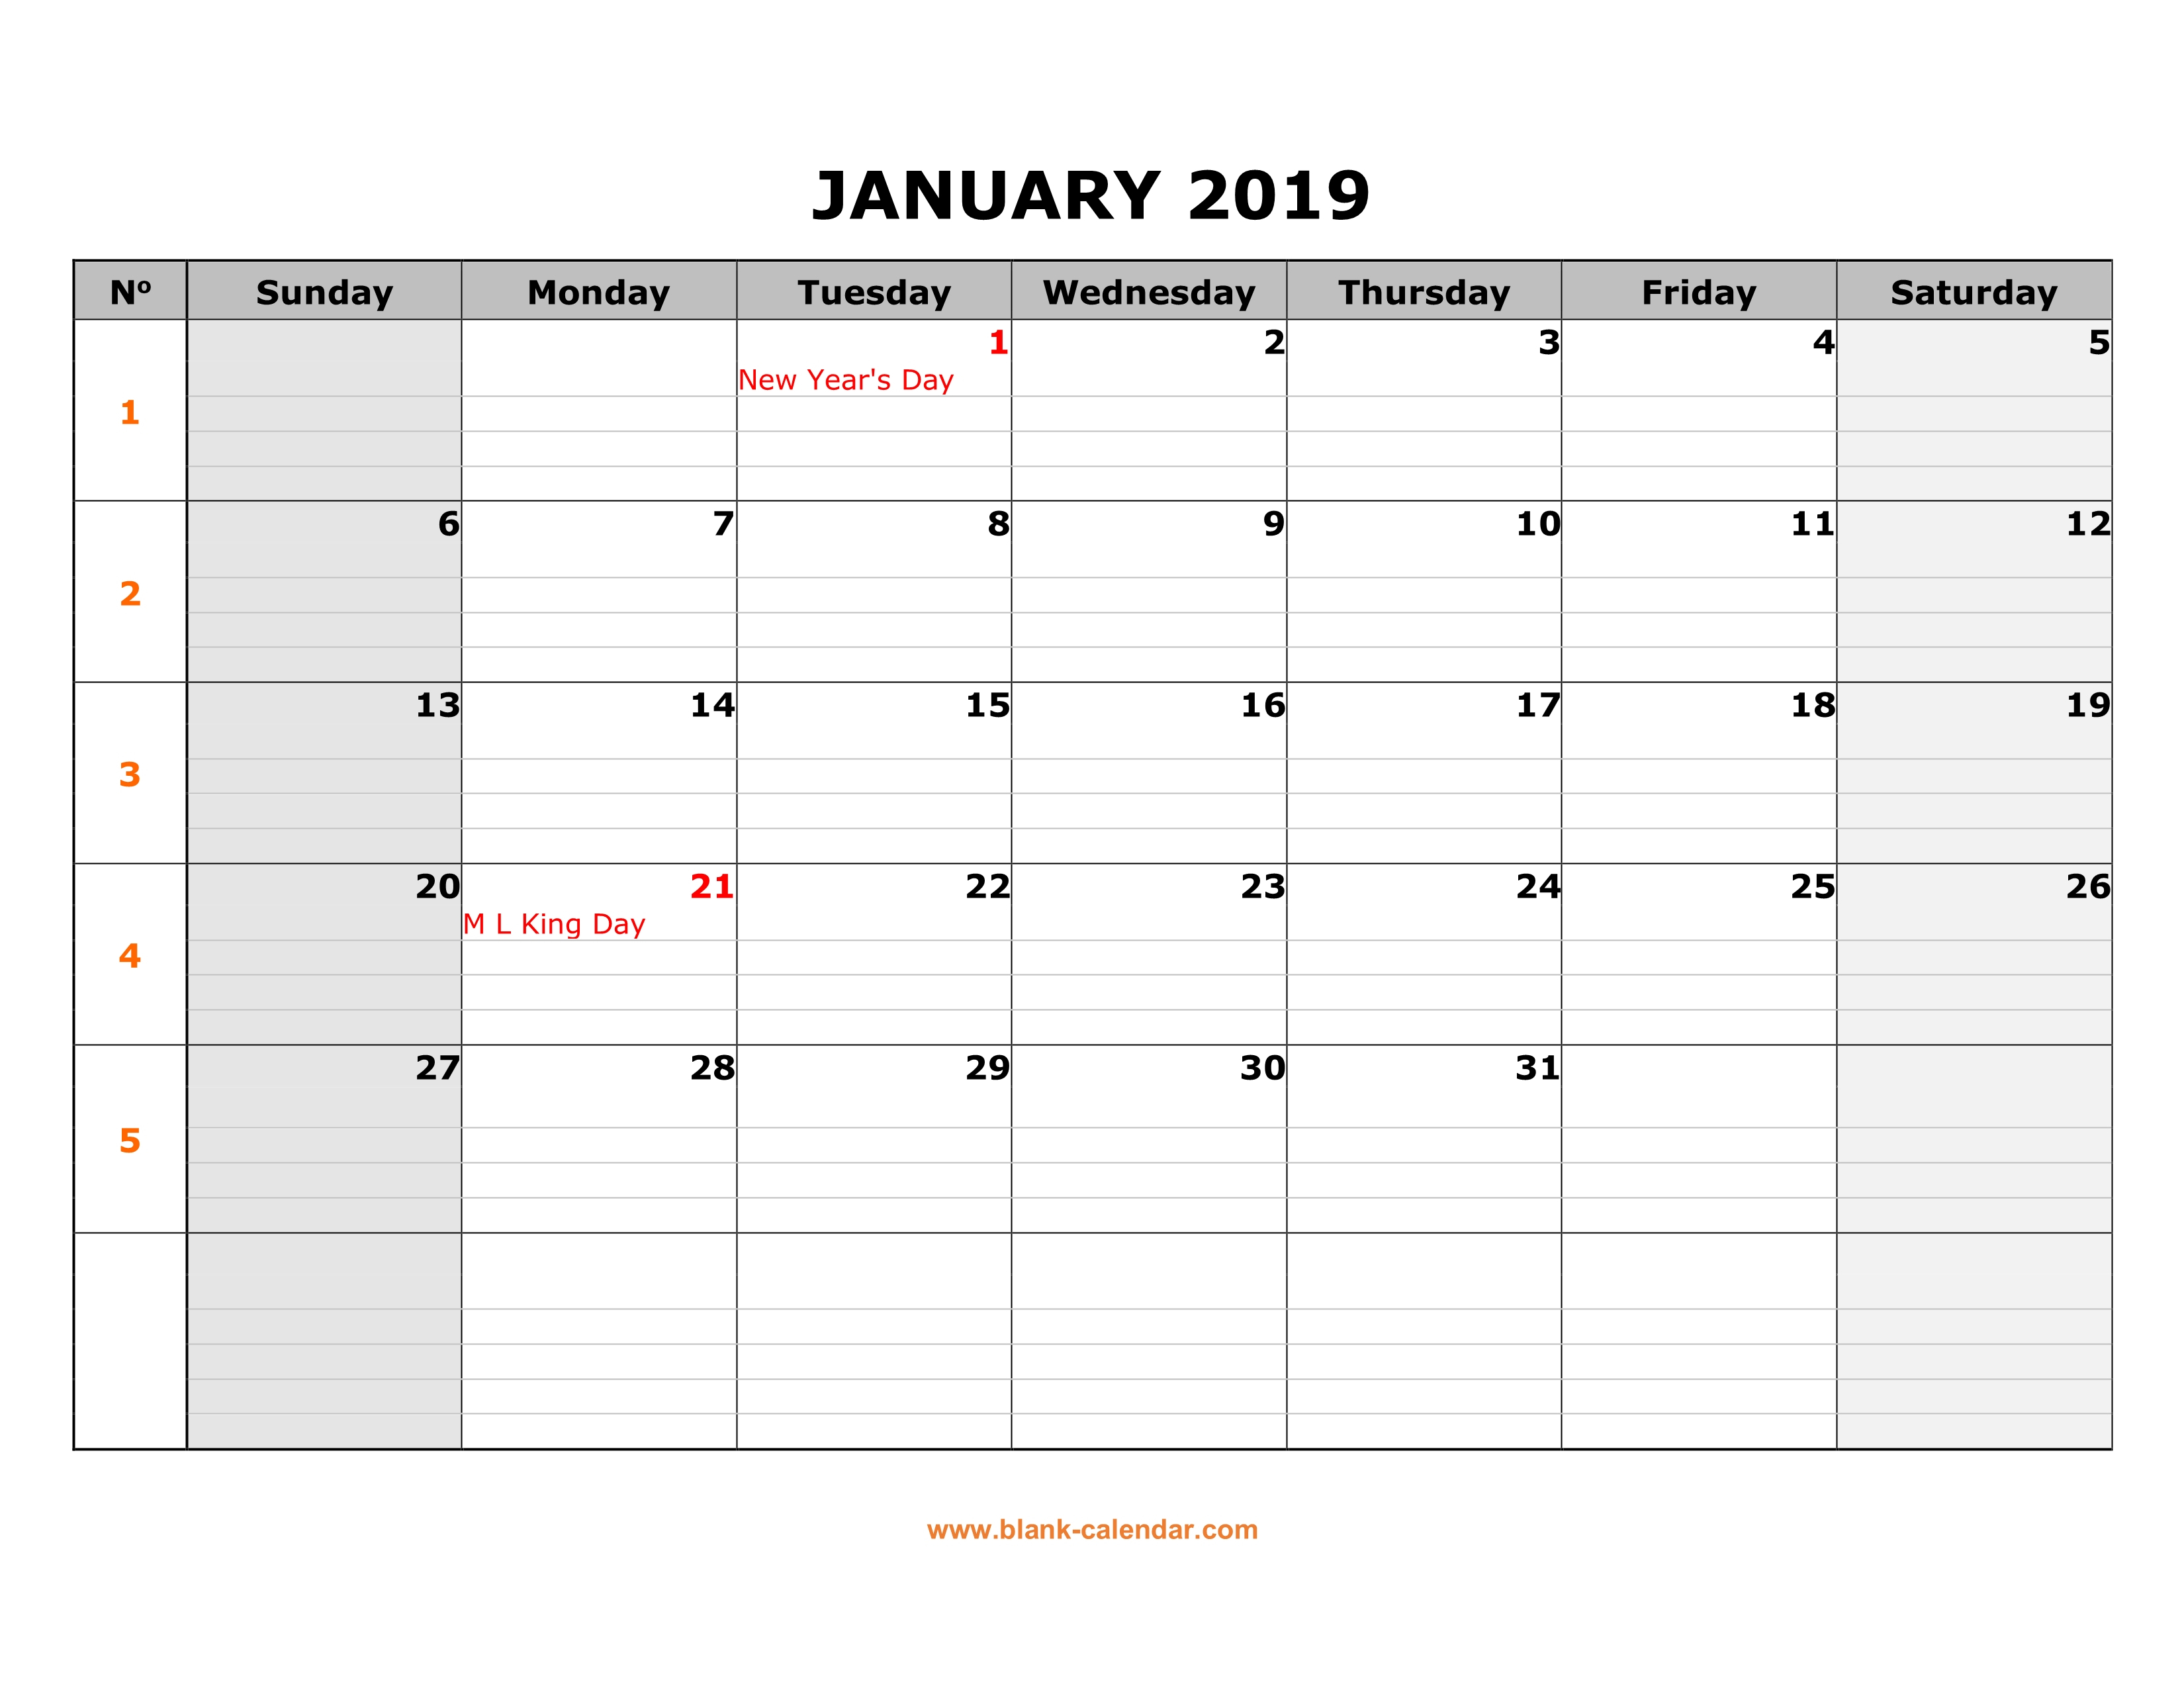 Free Download Printable Calendar 2019, Large Box Grid, Space For Notes in Blank Writable Calendar Template Large December Calendar Com